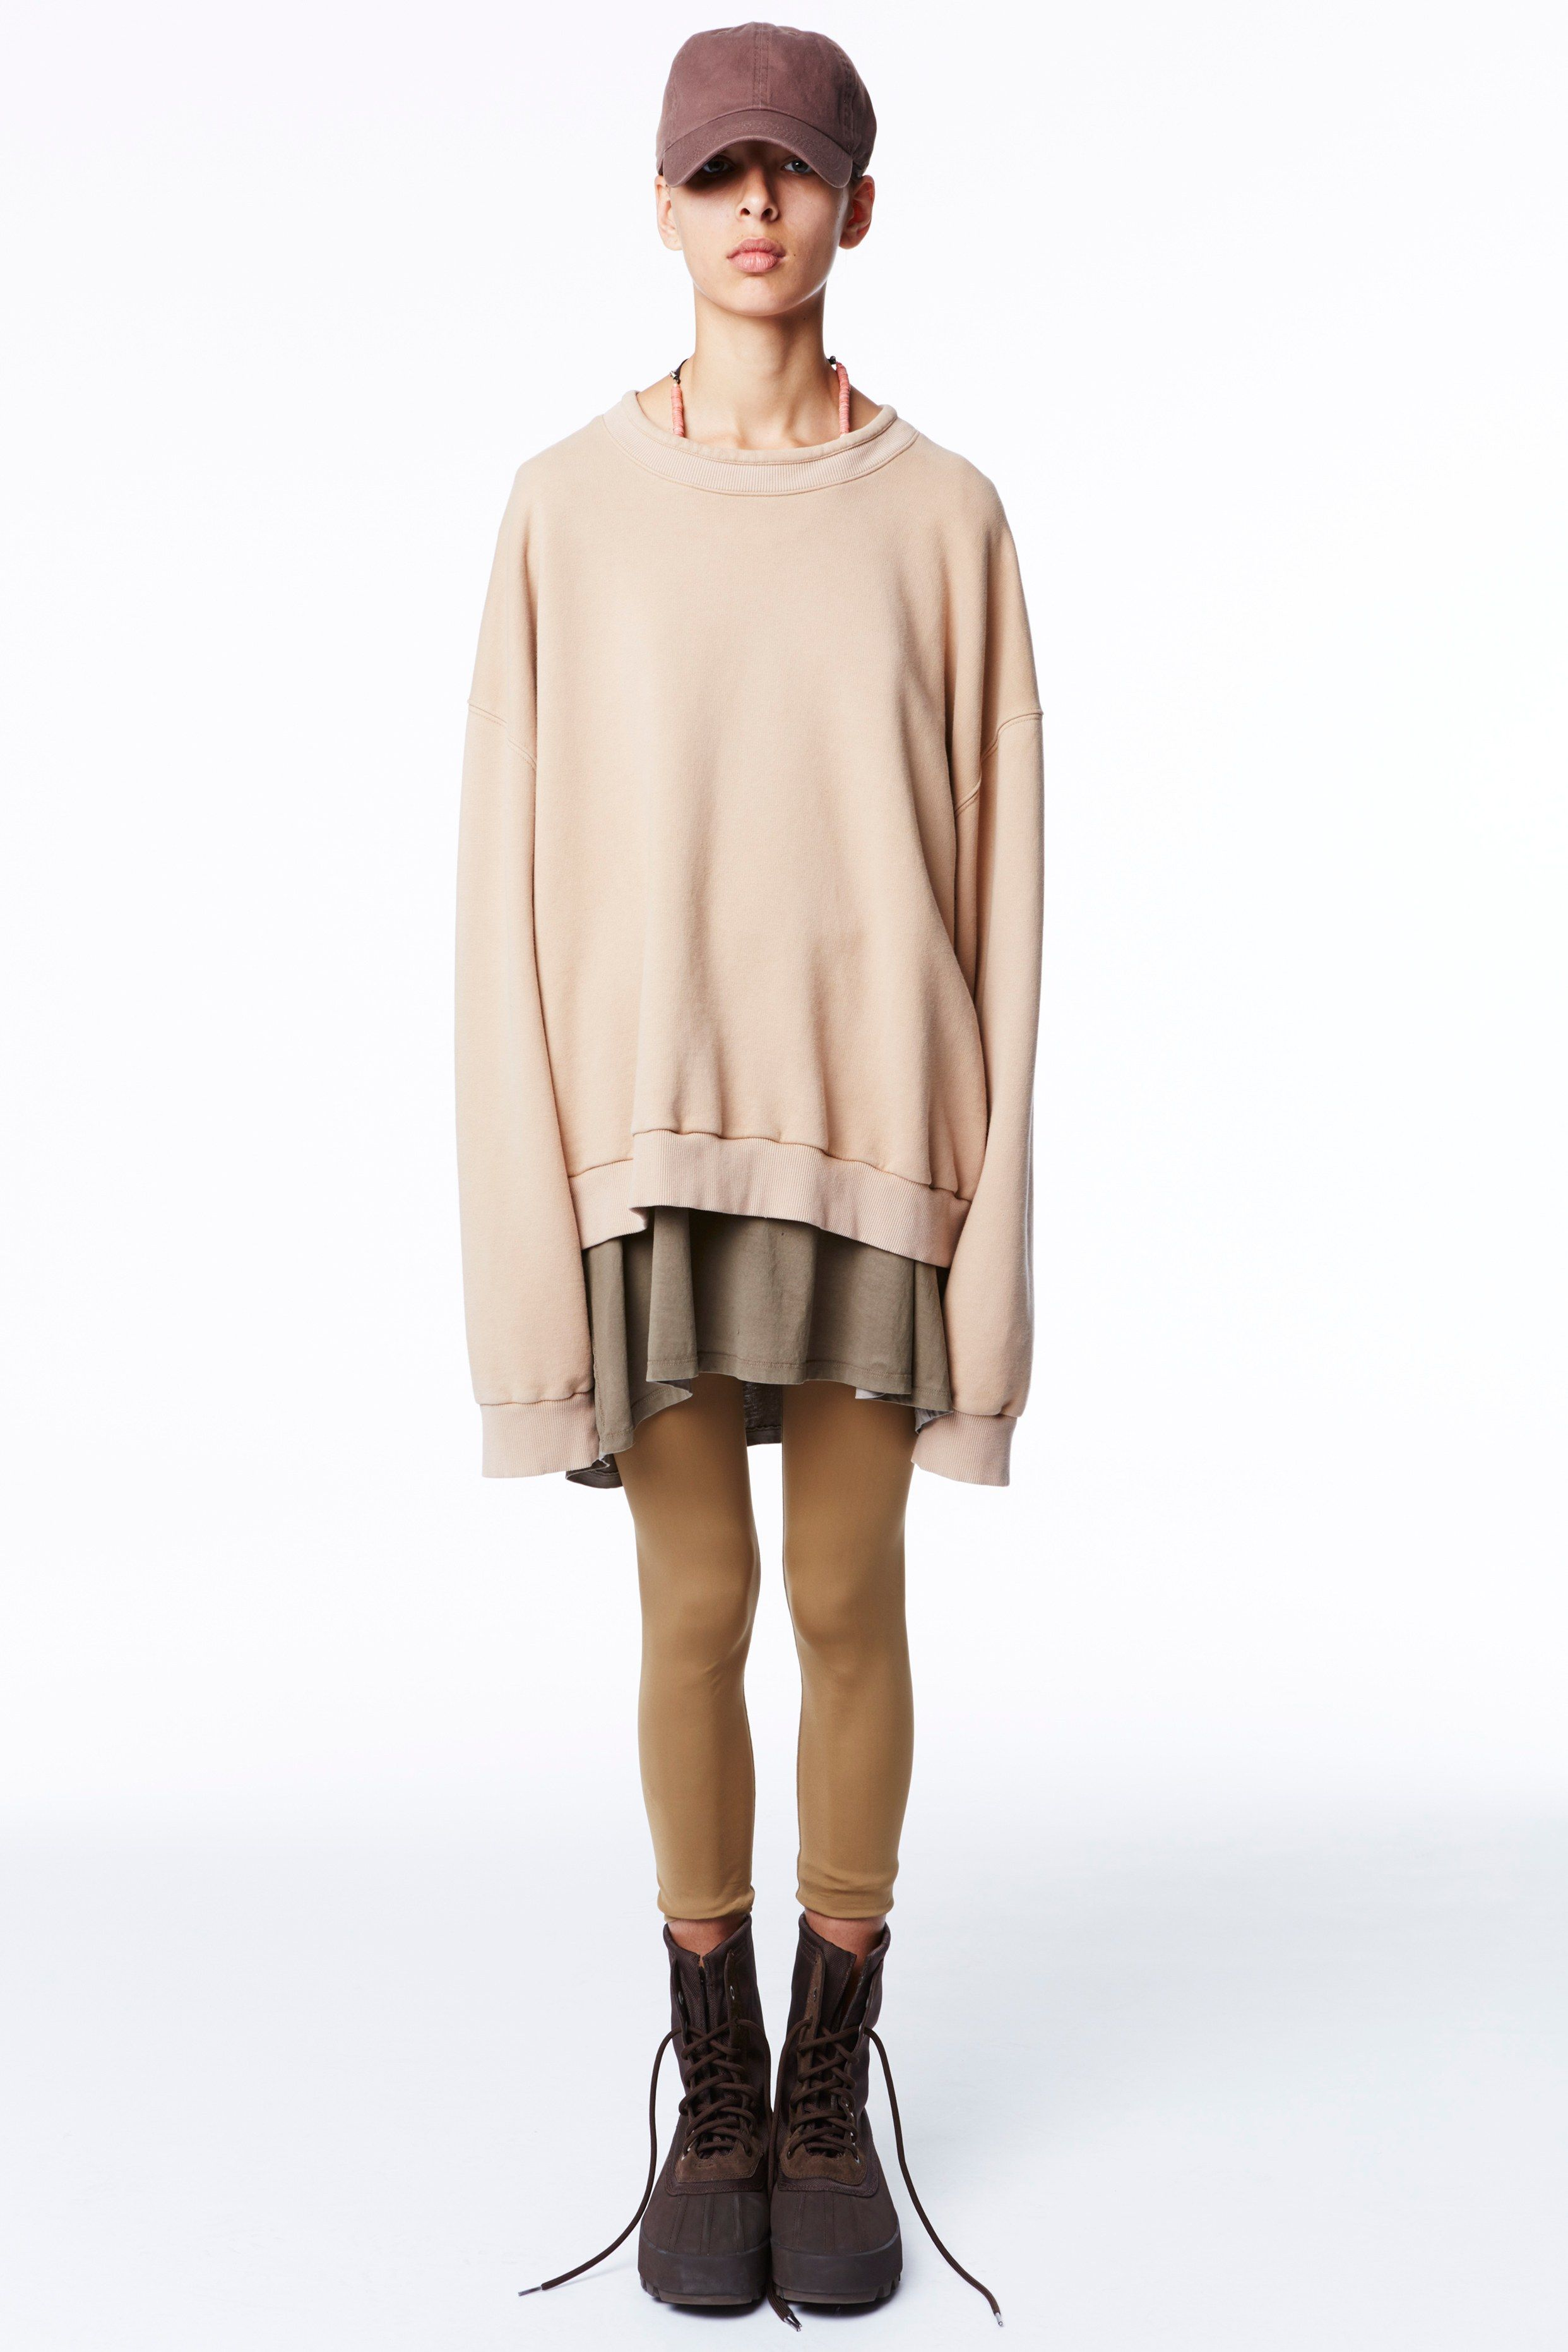 Yeezy Spring 2016 Ready To Wear Fashion Show Yeezy Fashion Yeezy Outfit Kanye West Clothing Line